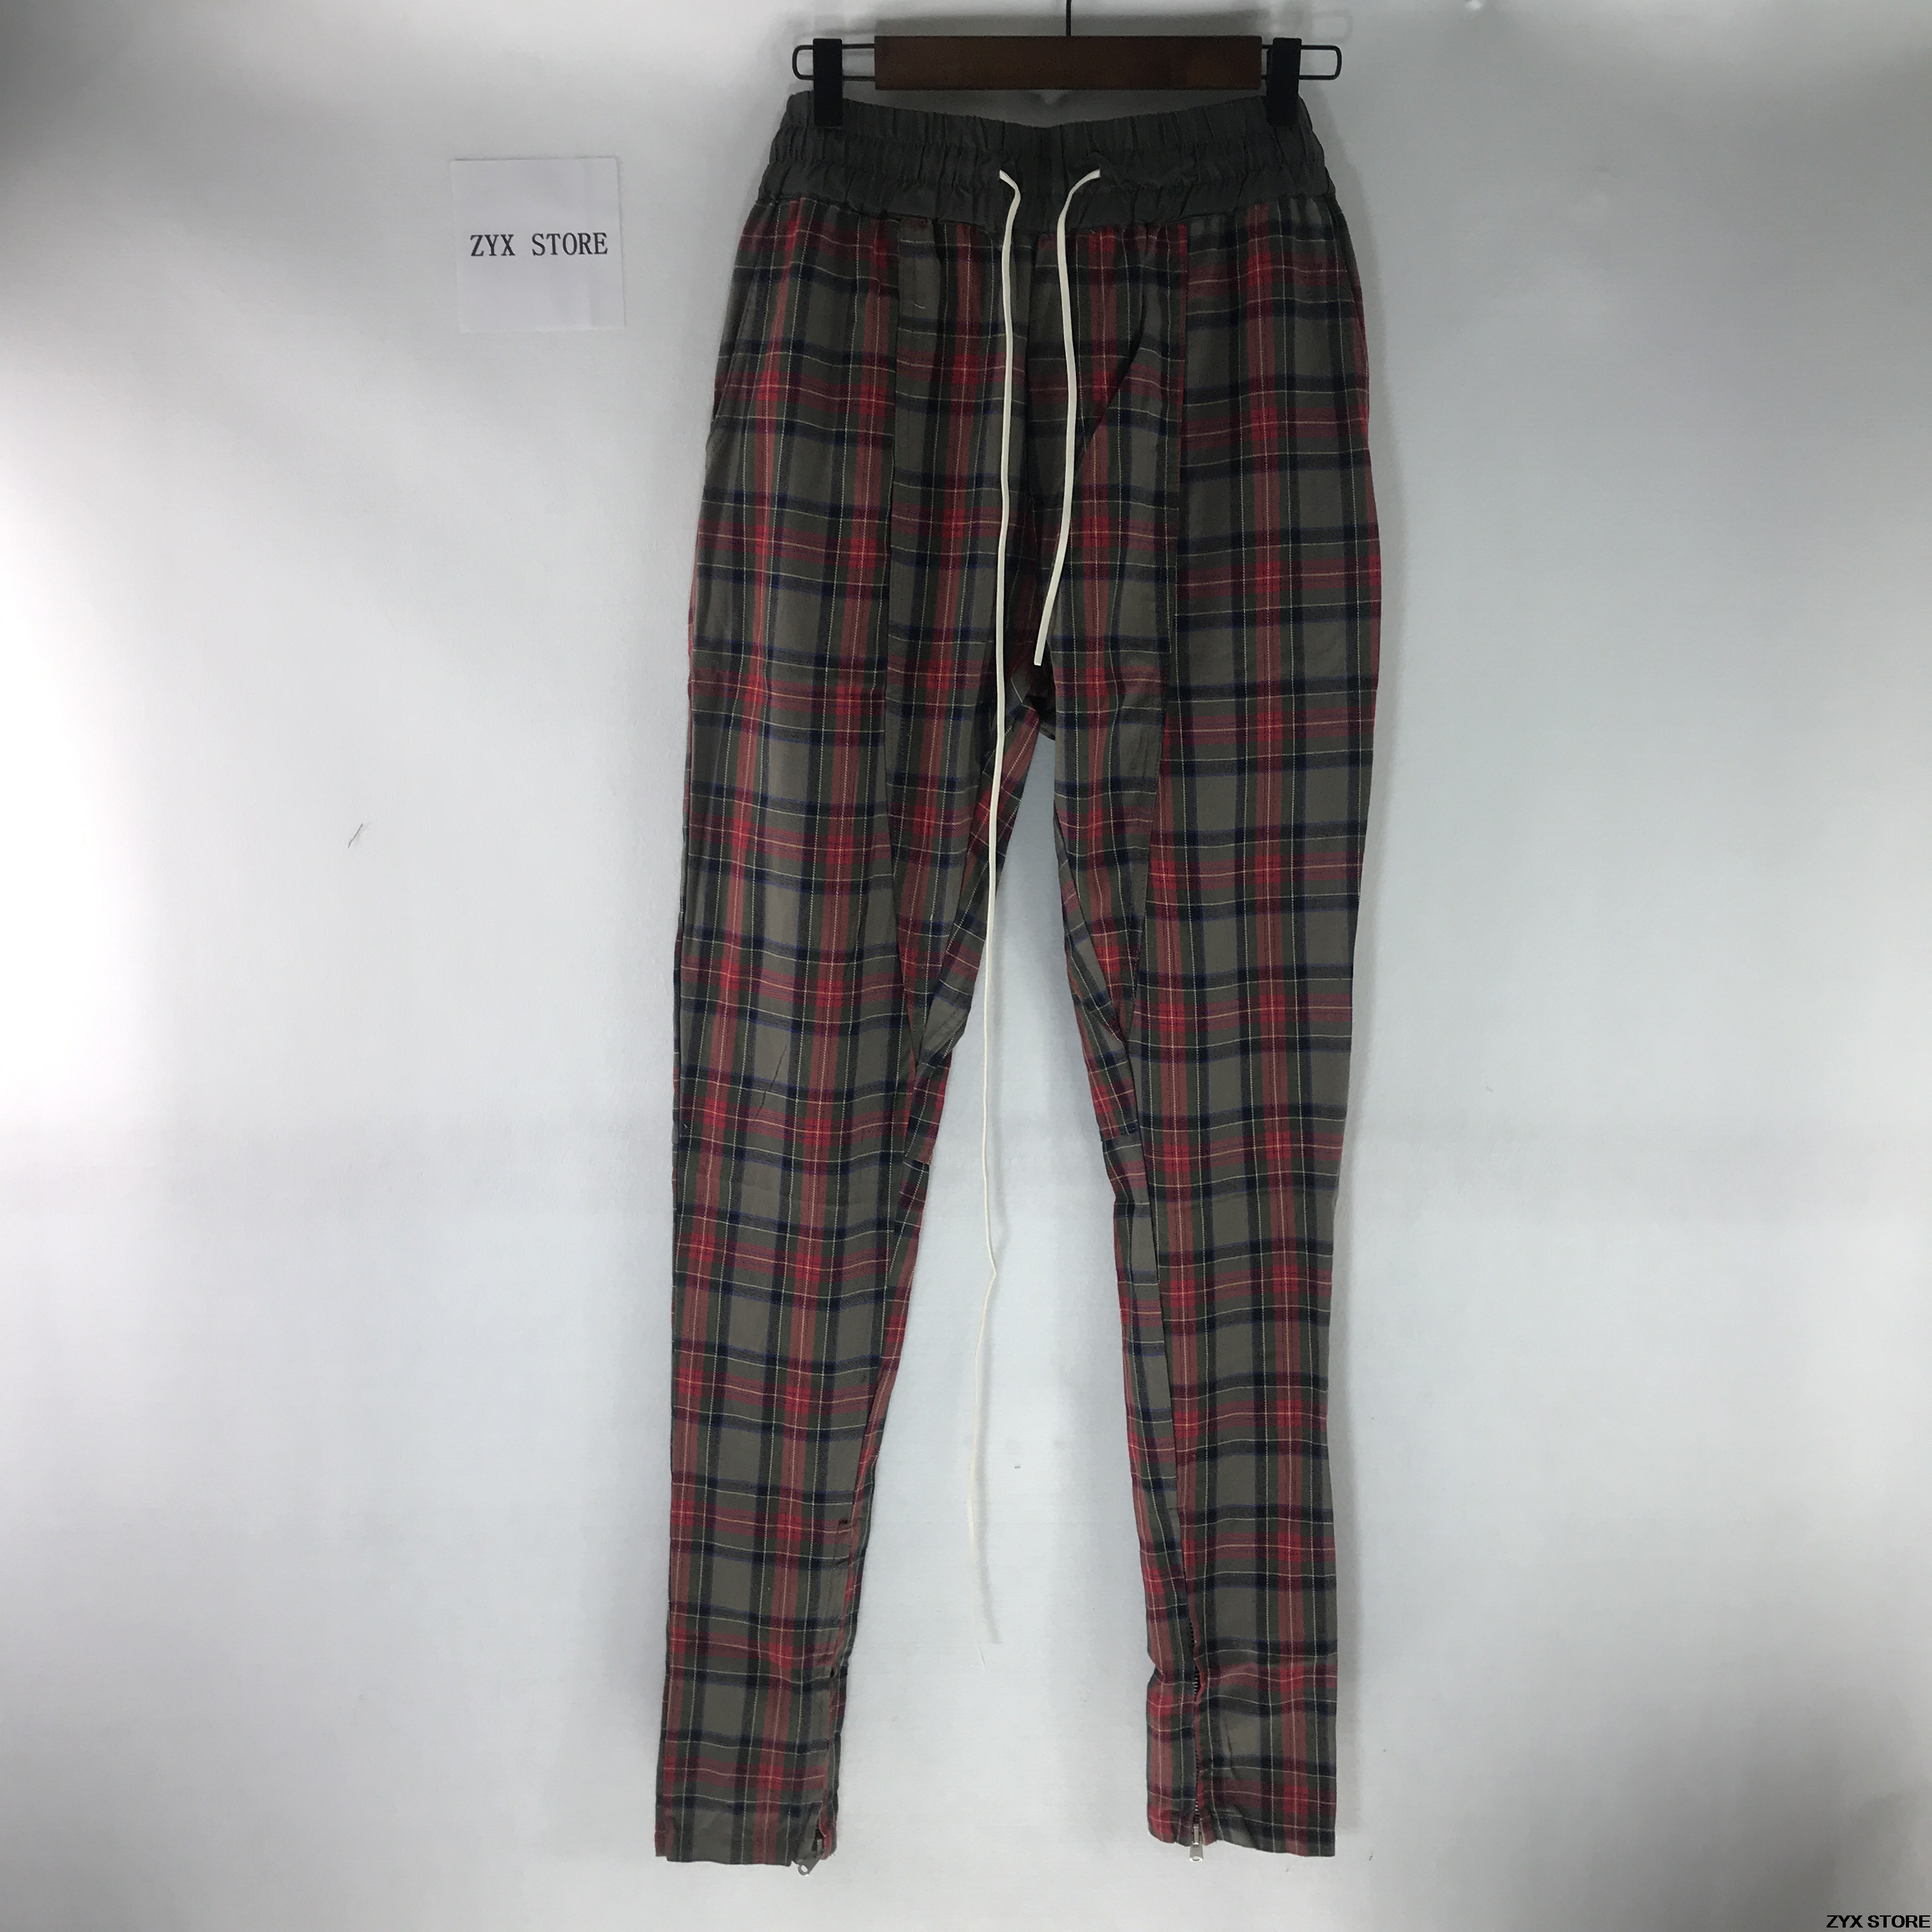 Best Version Fear Of God Fifth Collection New Plaid Pants Hiphop Justin Bieber Scotch Lattice Side Zip Men FOG Pants Trousers fifth harmony acapulco